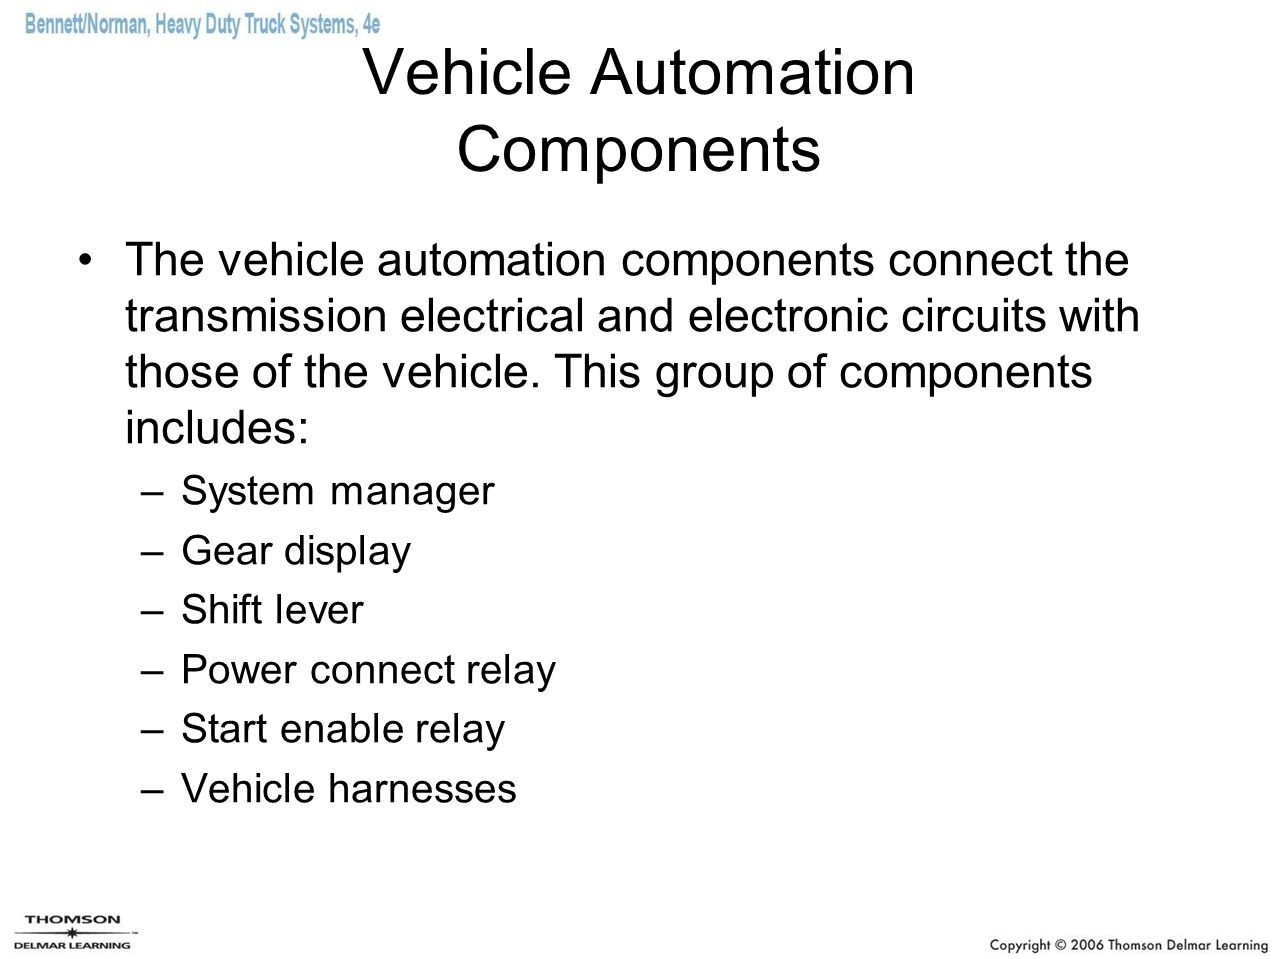 Vehicle Automation Components